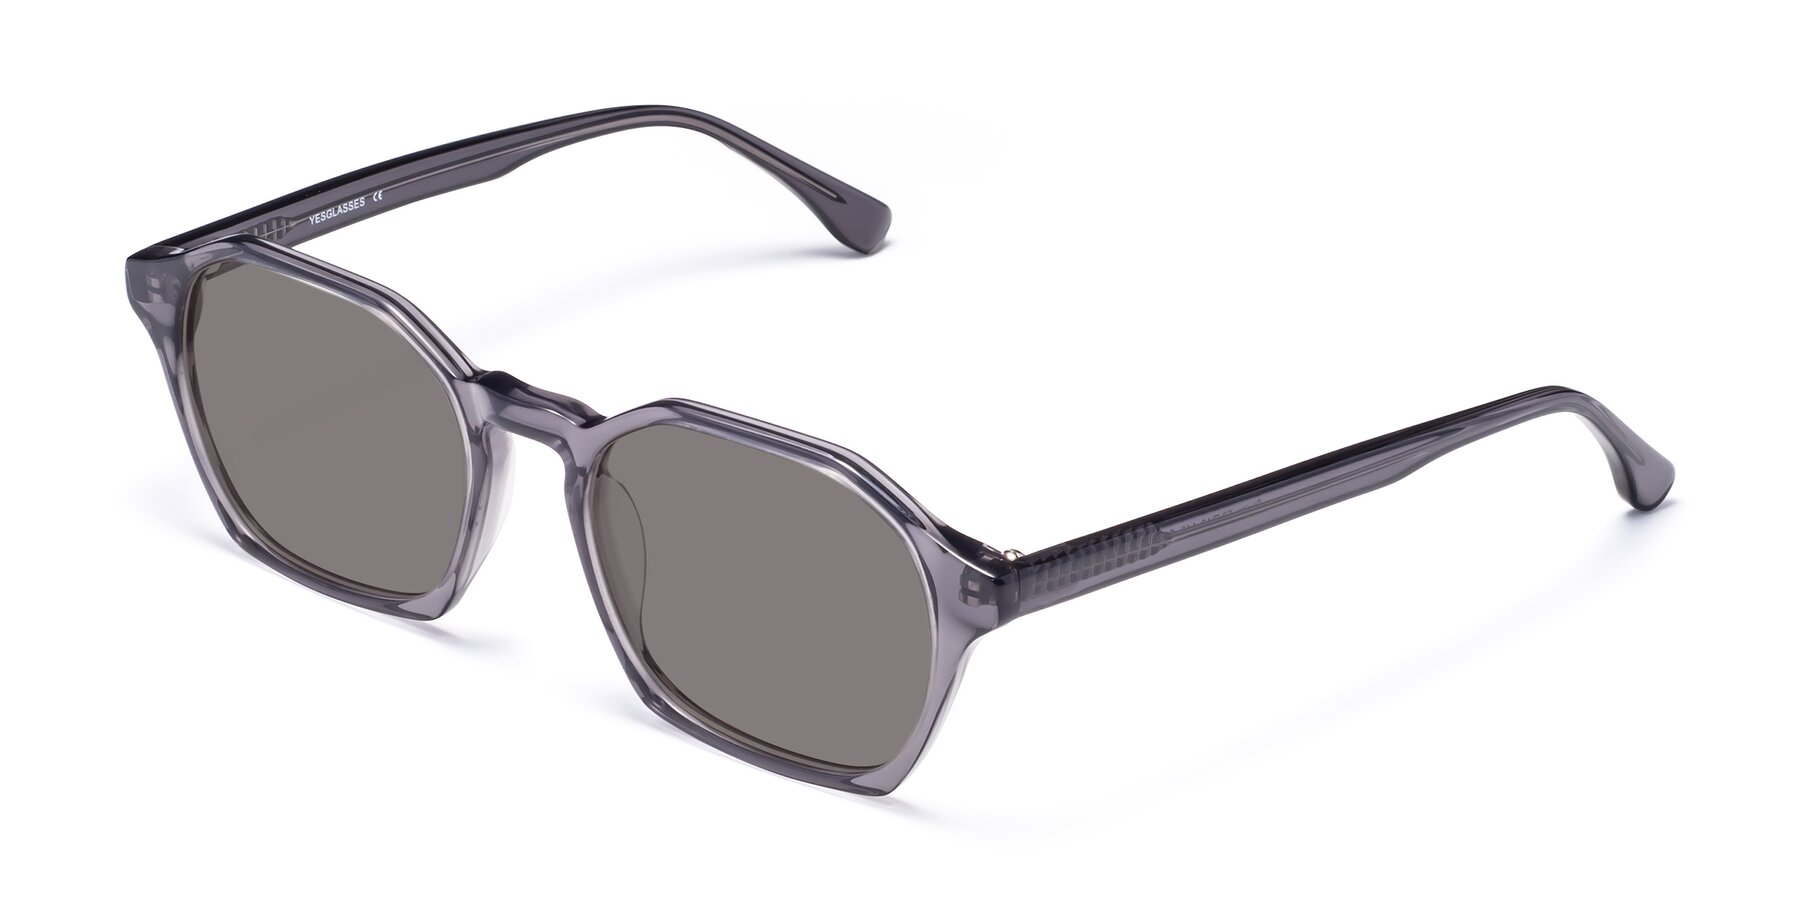 Angle of Stoltz in Translucent Gray with Medium Gray Tinted Lenses